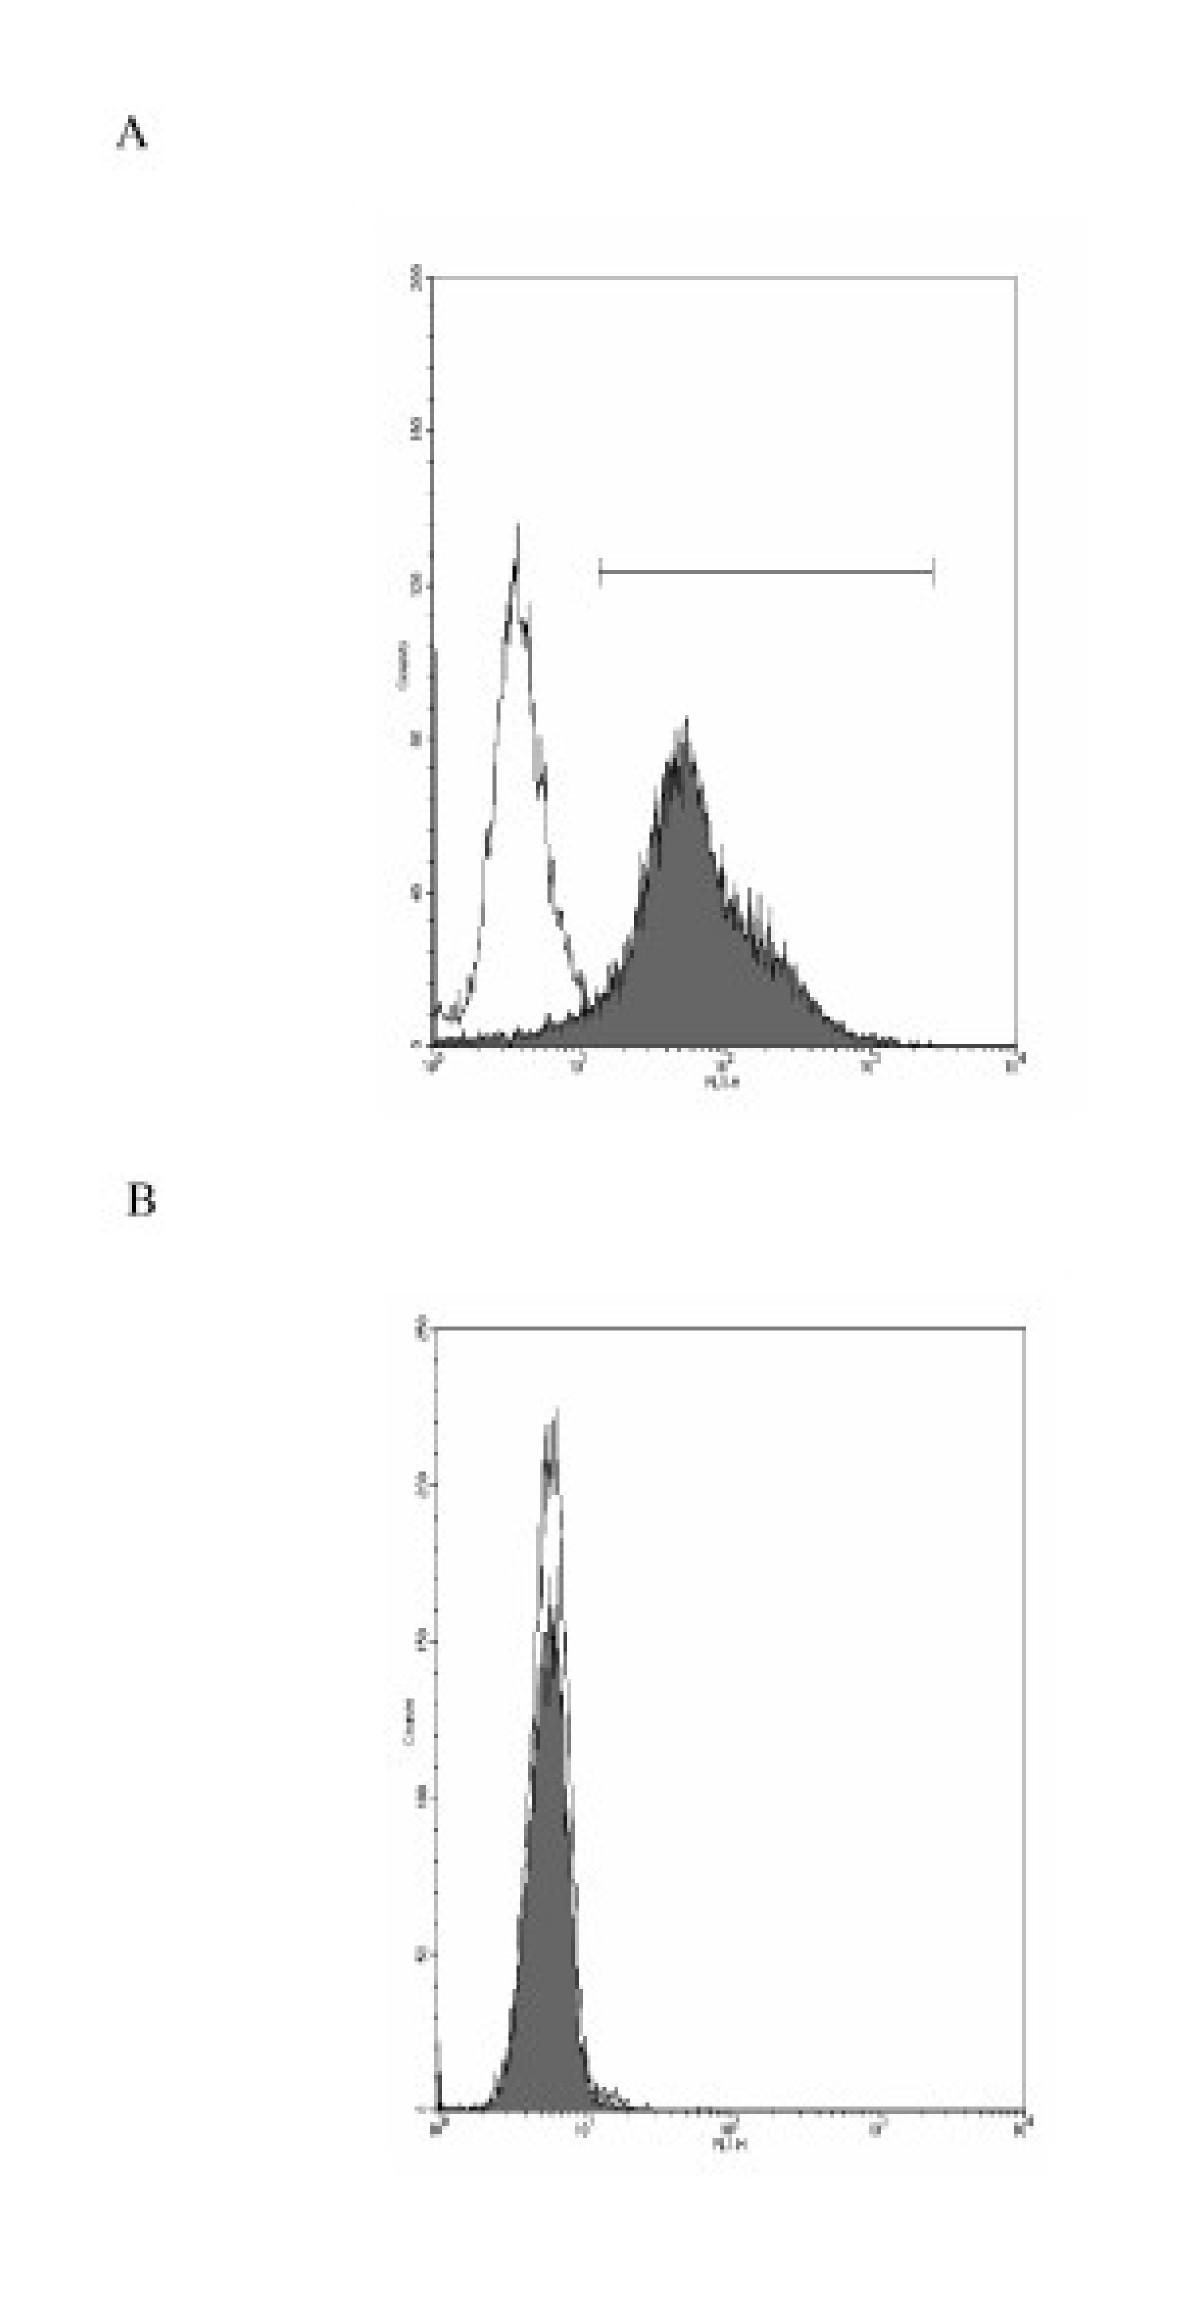 https://static-content.springer.com/image/art%3A10.1186%2F1465-9921-6-135/MediaObjects/12931_2005_Article_373_Fig1_HTML.jpg